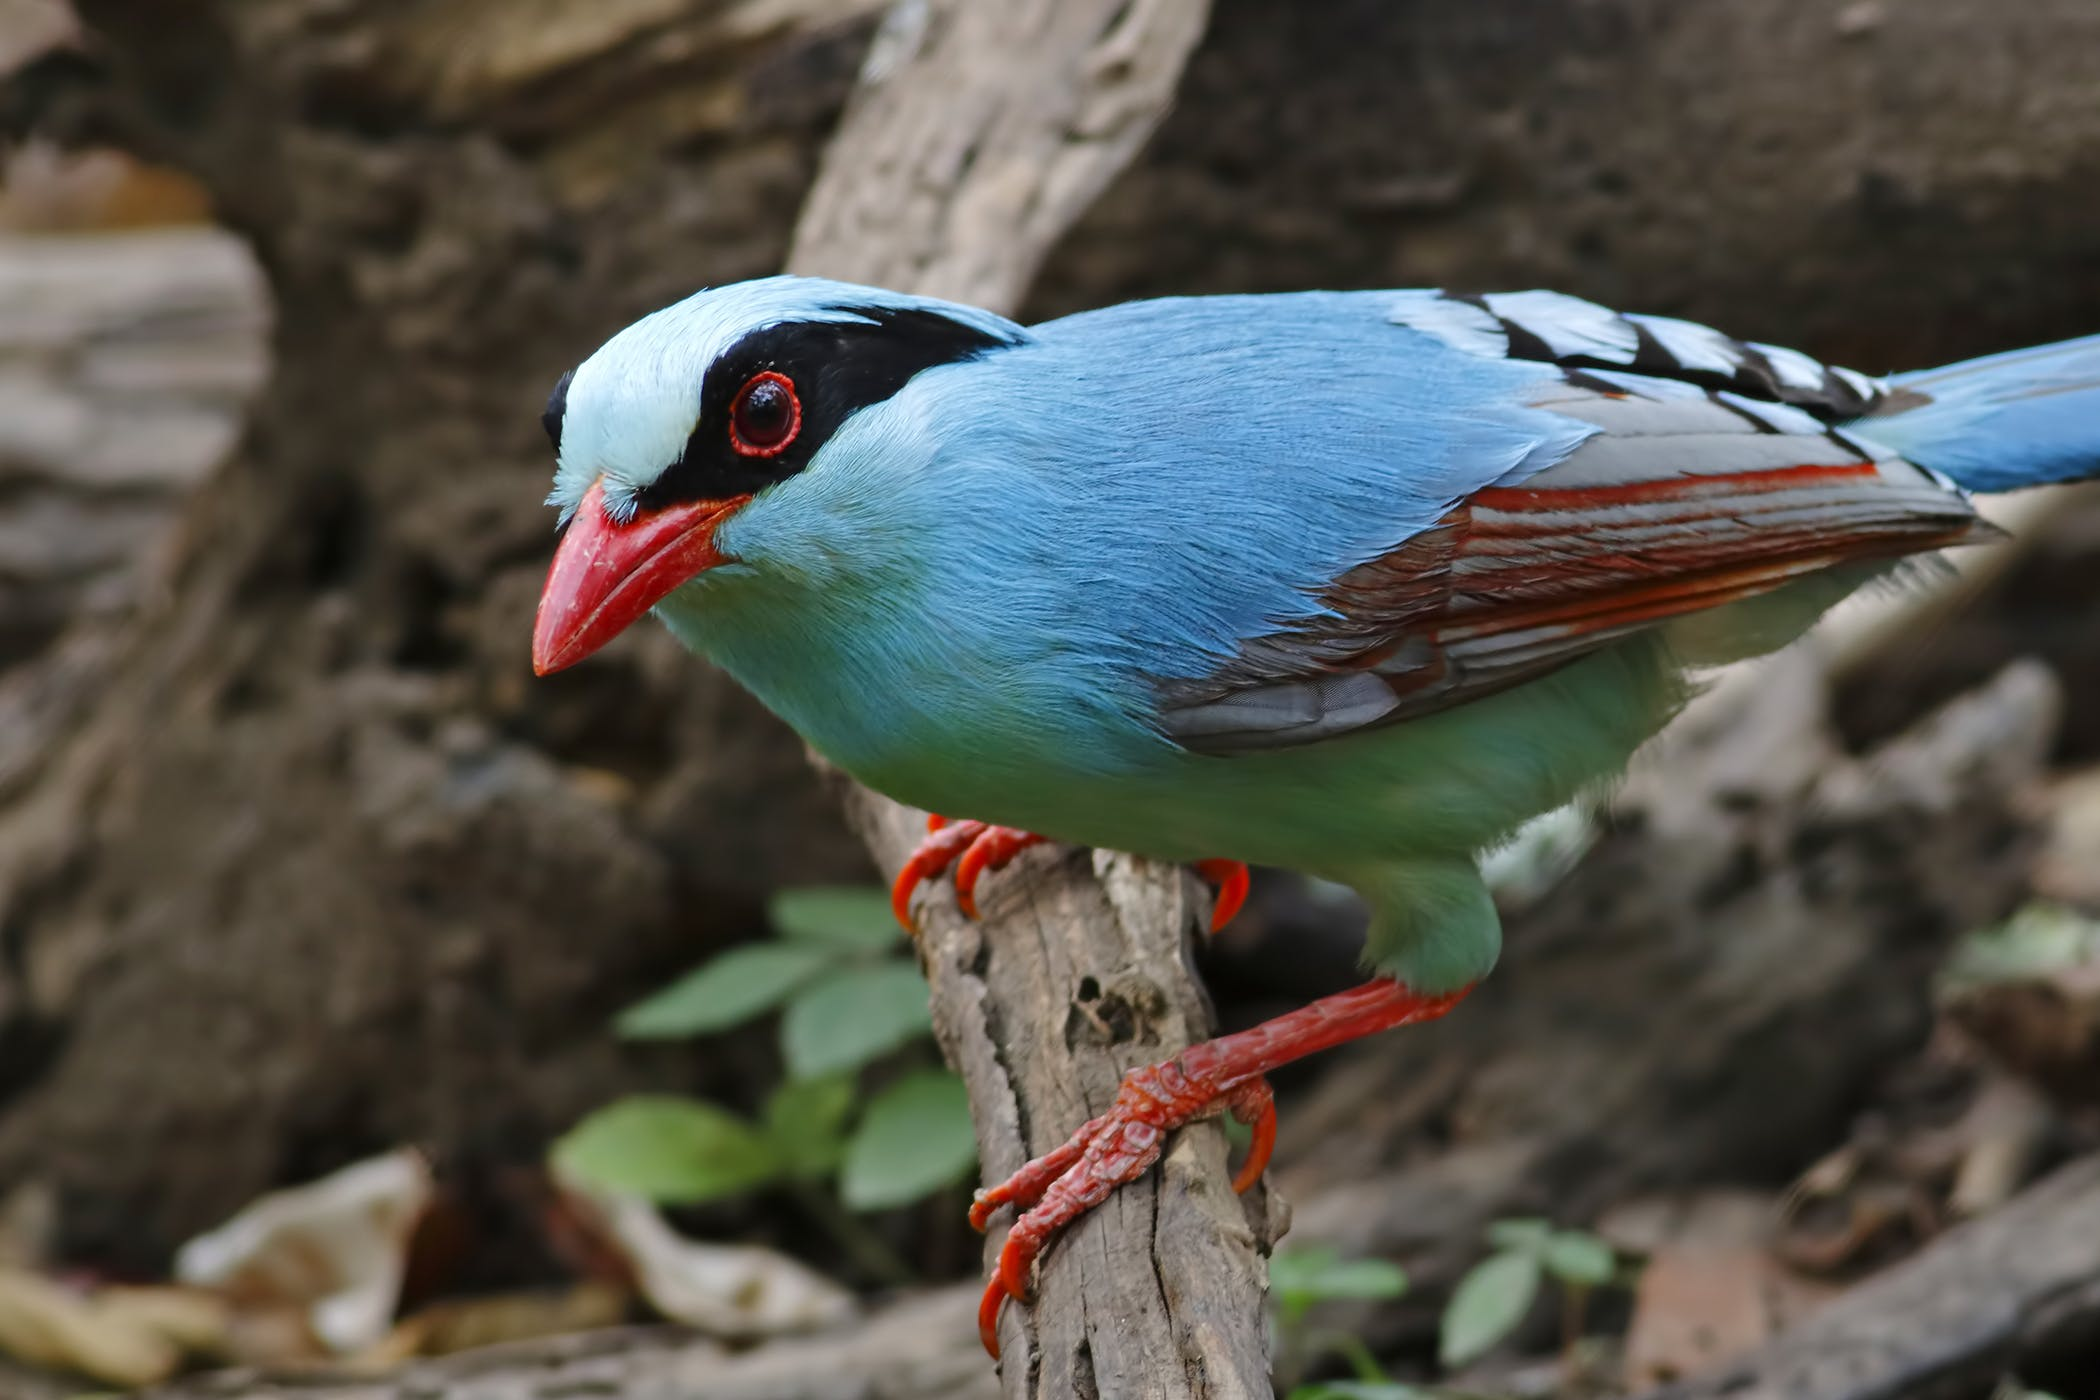 Cloacal Prolapse in Birds - Symptoms, Causes, Diagnosis